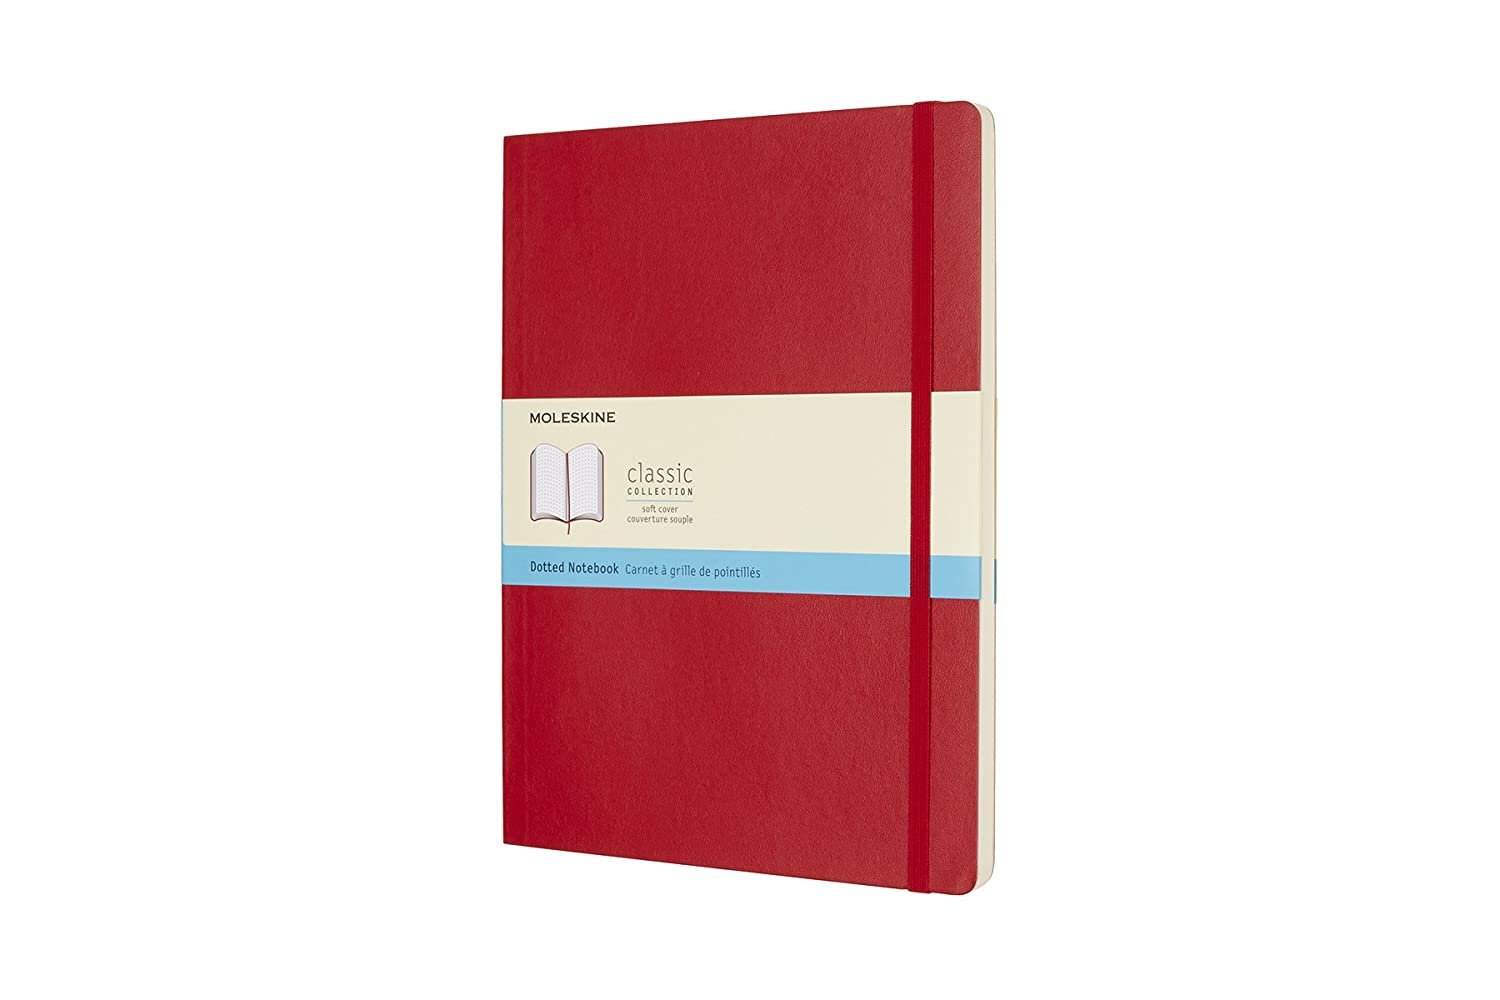 Moleskine Classic Notebook, Extra Large, Dotted, Scarlet Red, Soft Cover (7.5 x 10) 8055002854702 NON-CLASSIFIABLE